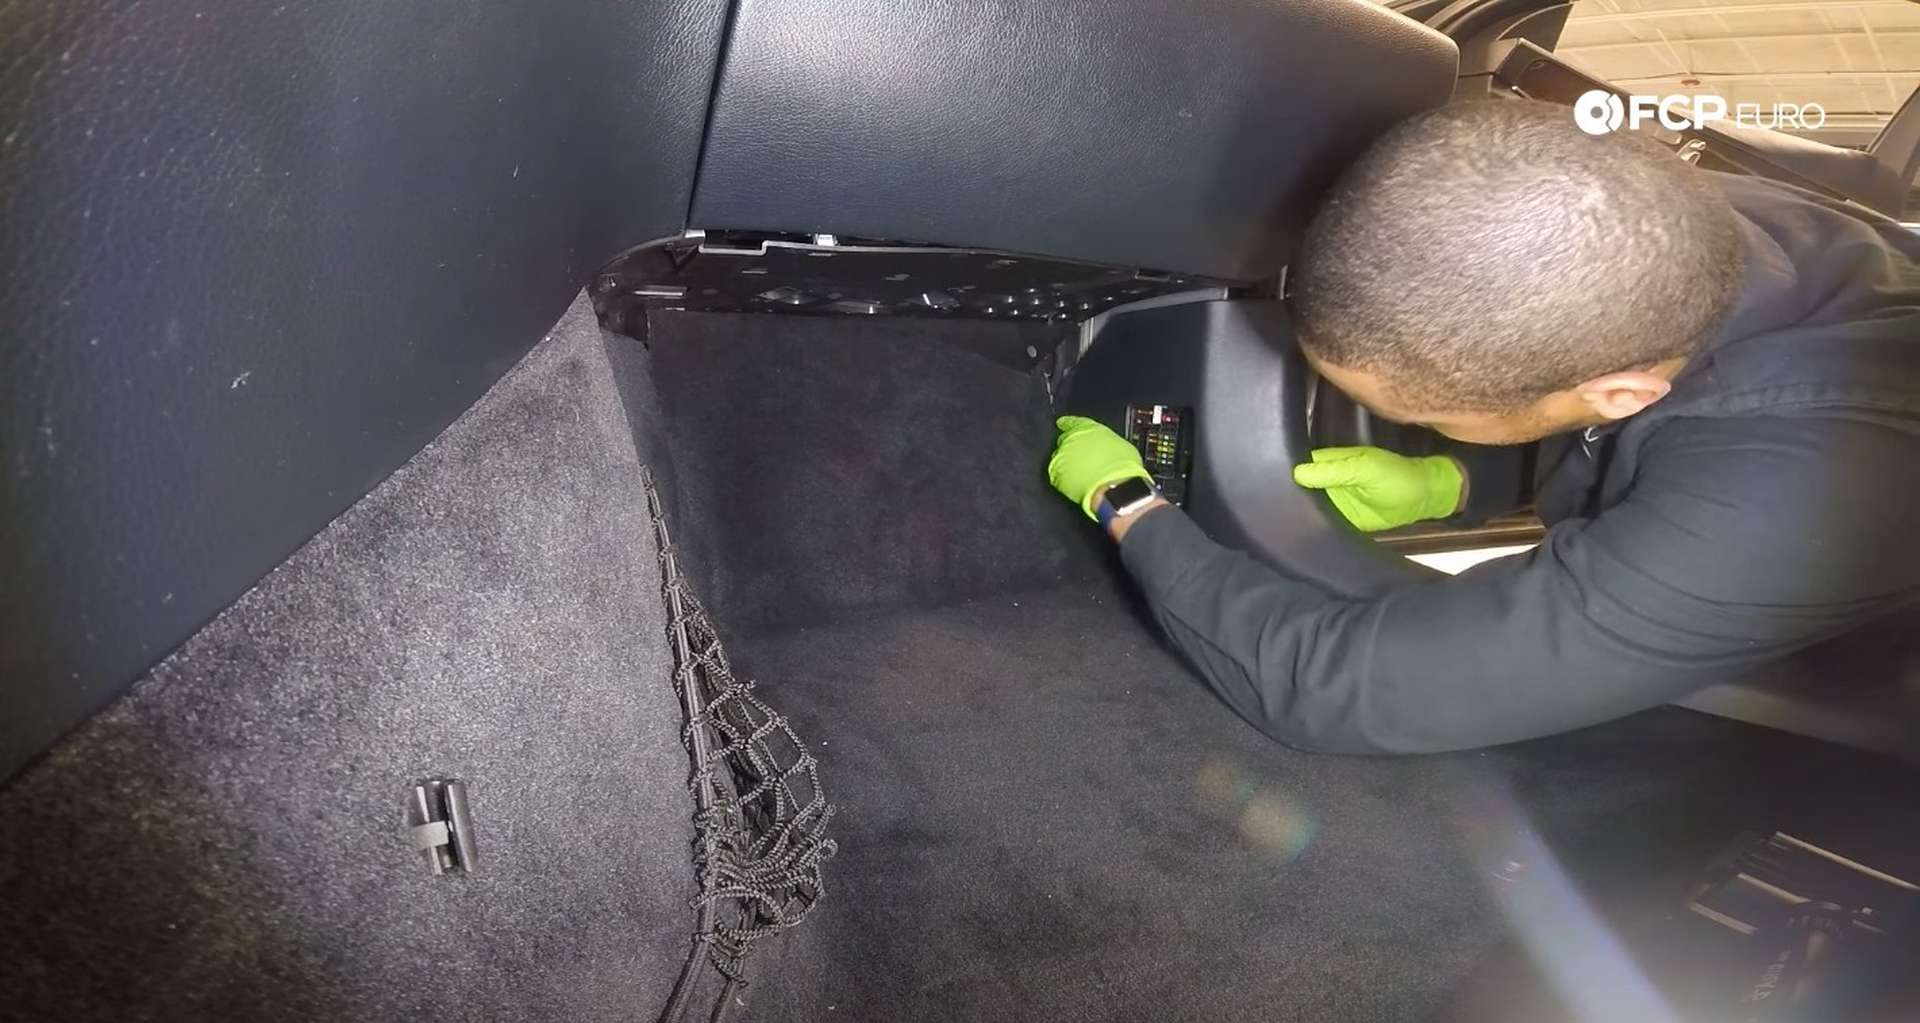 08-DIY-Mercedes-W205-Aux-Battery-Replacement_Replacing-Battery